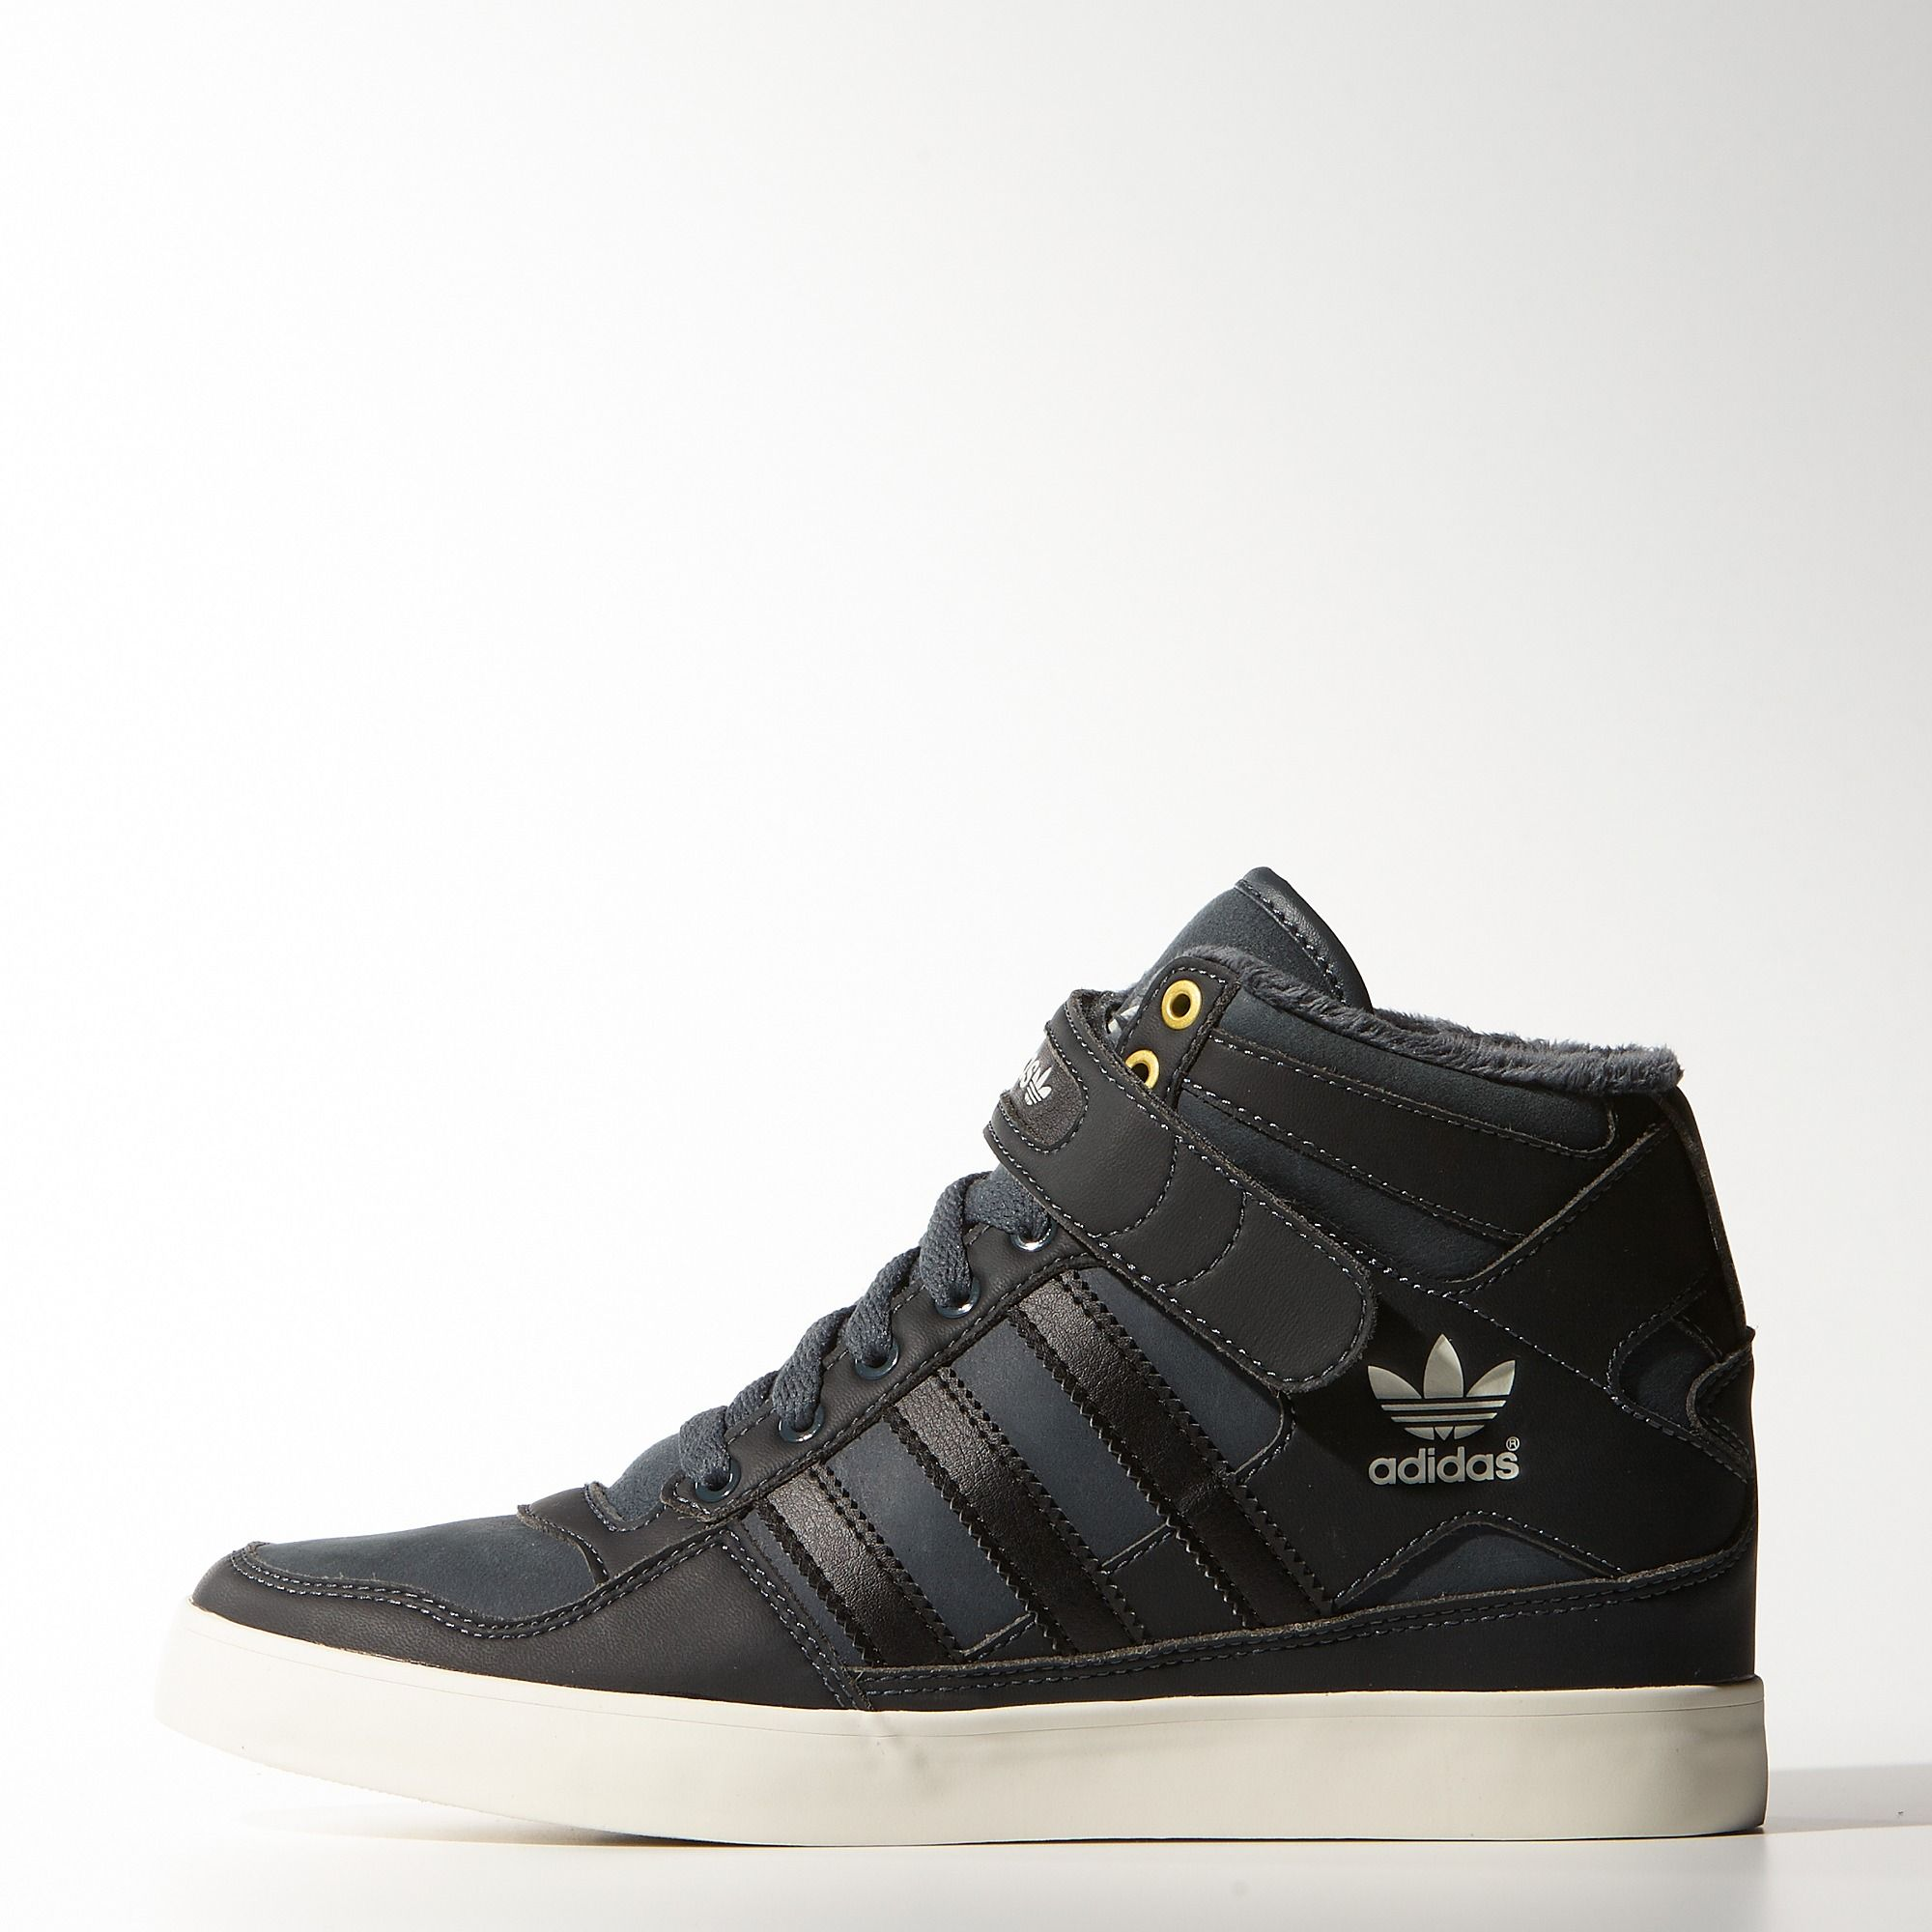 Forum Shoes | adidas US